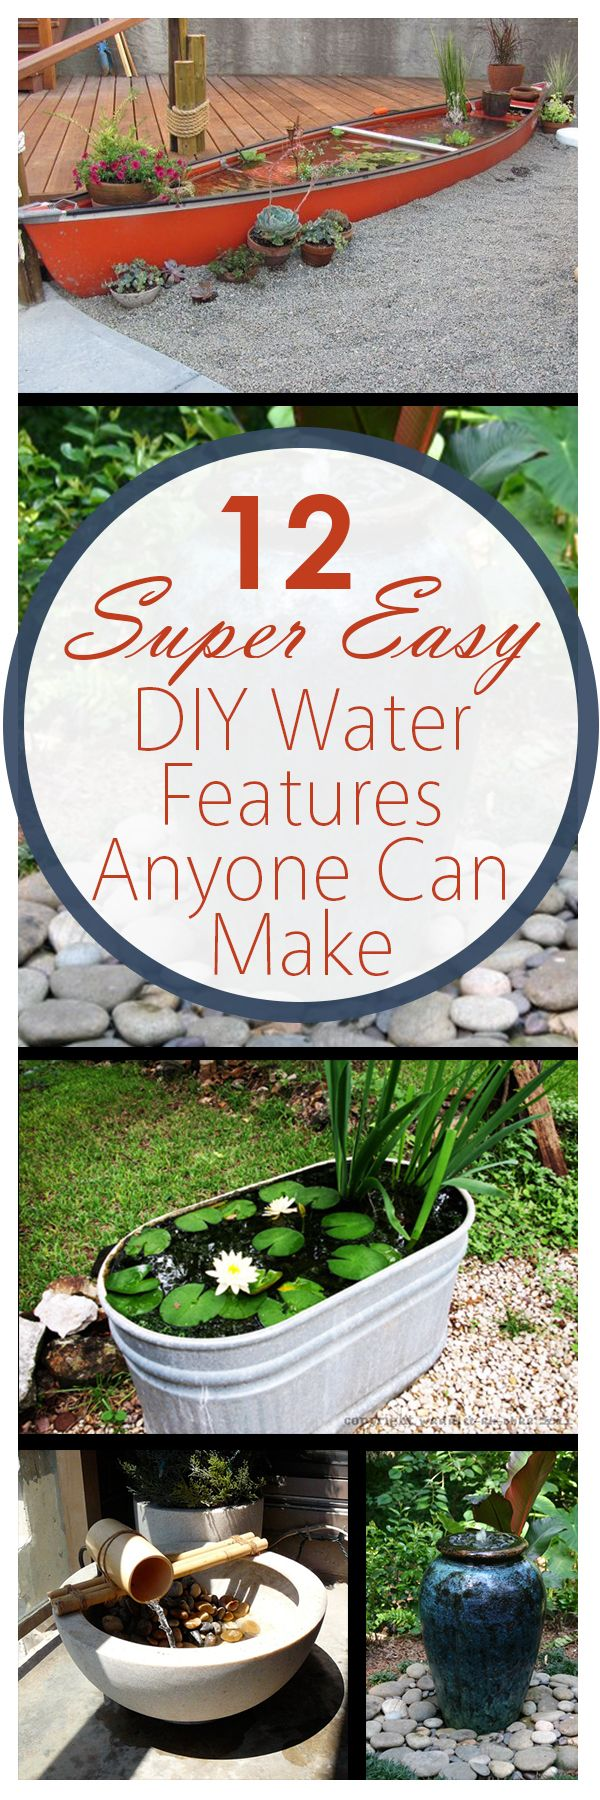 12 Super Easy DIY Water Features Anyone Can Make                                                                                                                                                      More